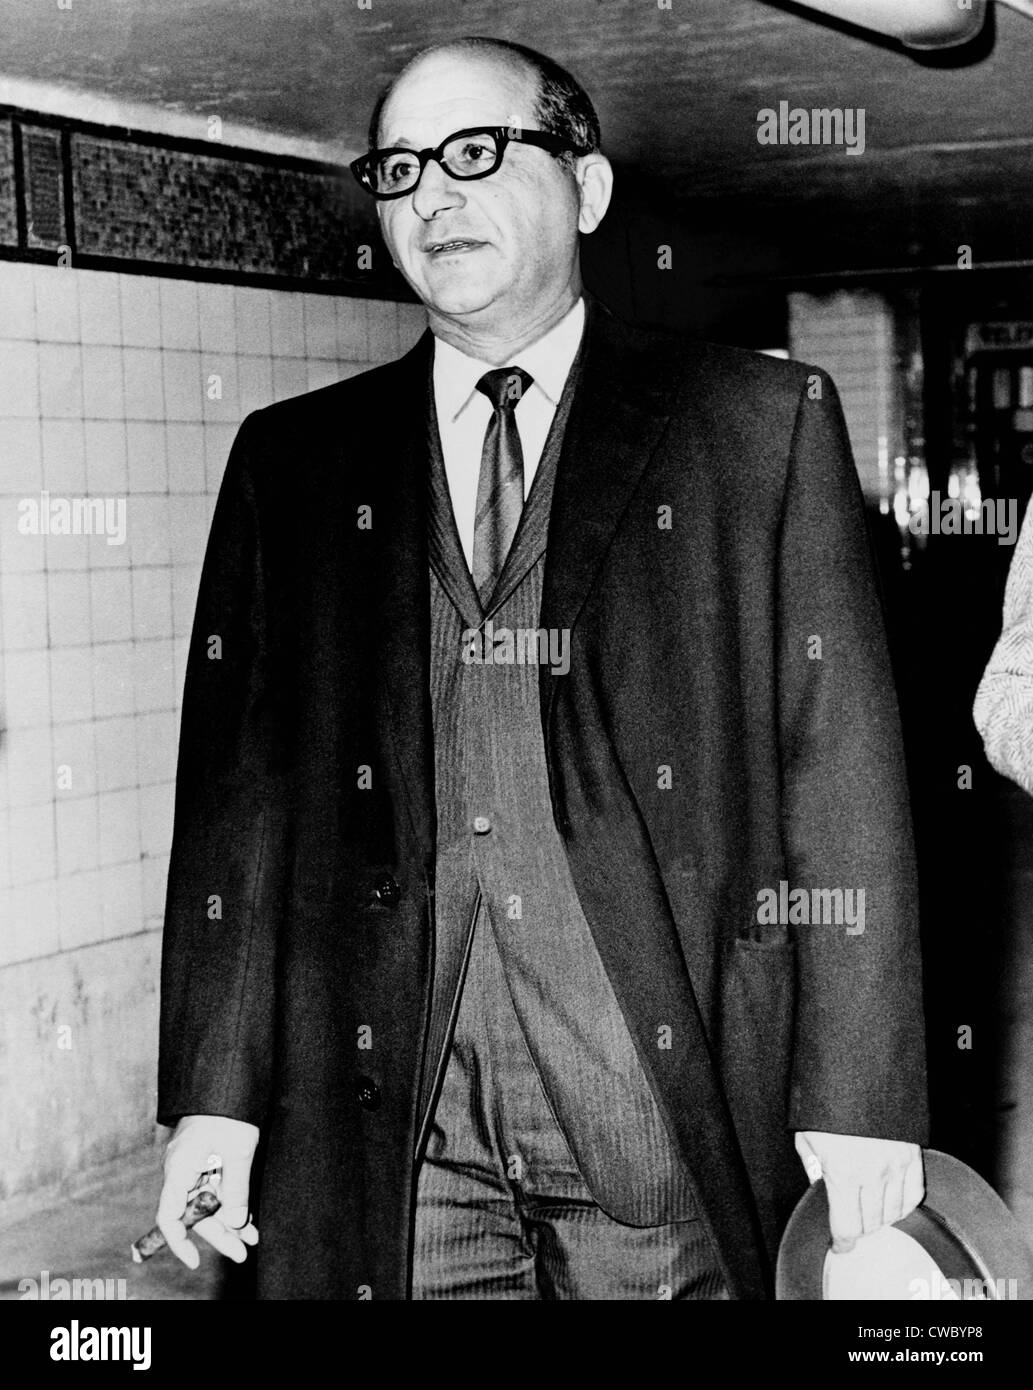 Sammy Giancana (1908-1975), American mobster and boss of the 'Chicago Outfit', leaving the Federal Building - Stock Image